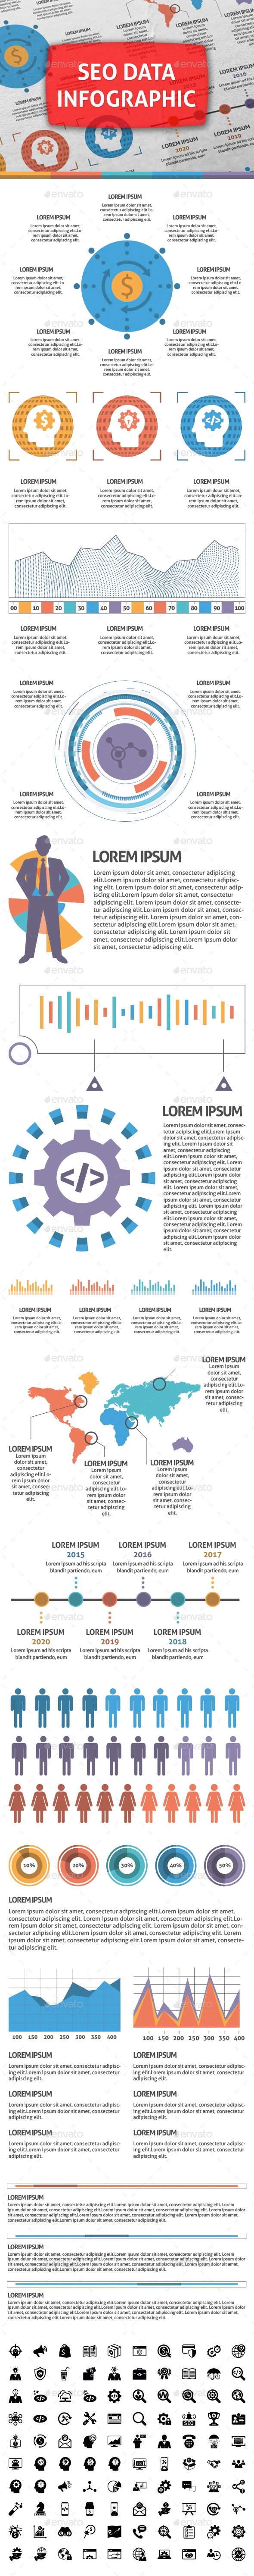 Seo Data Infographic Elements - Infographics